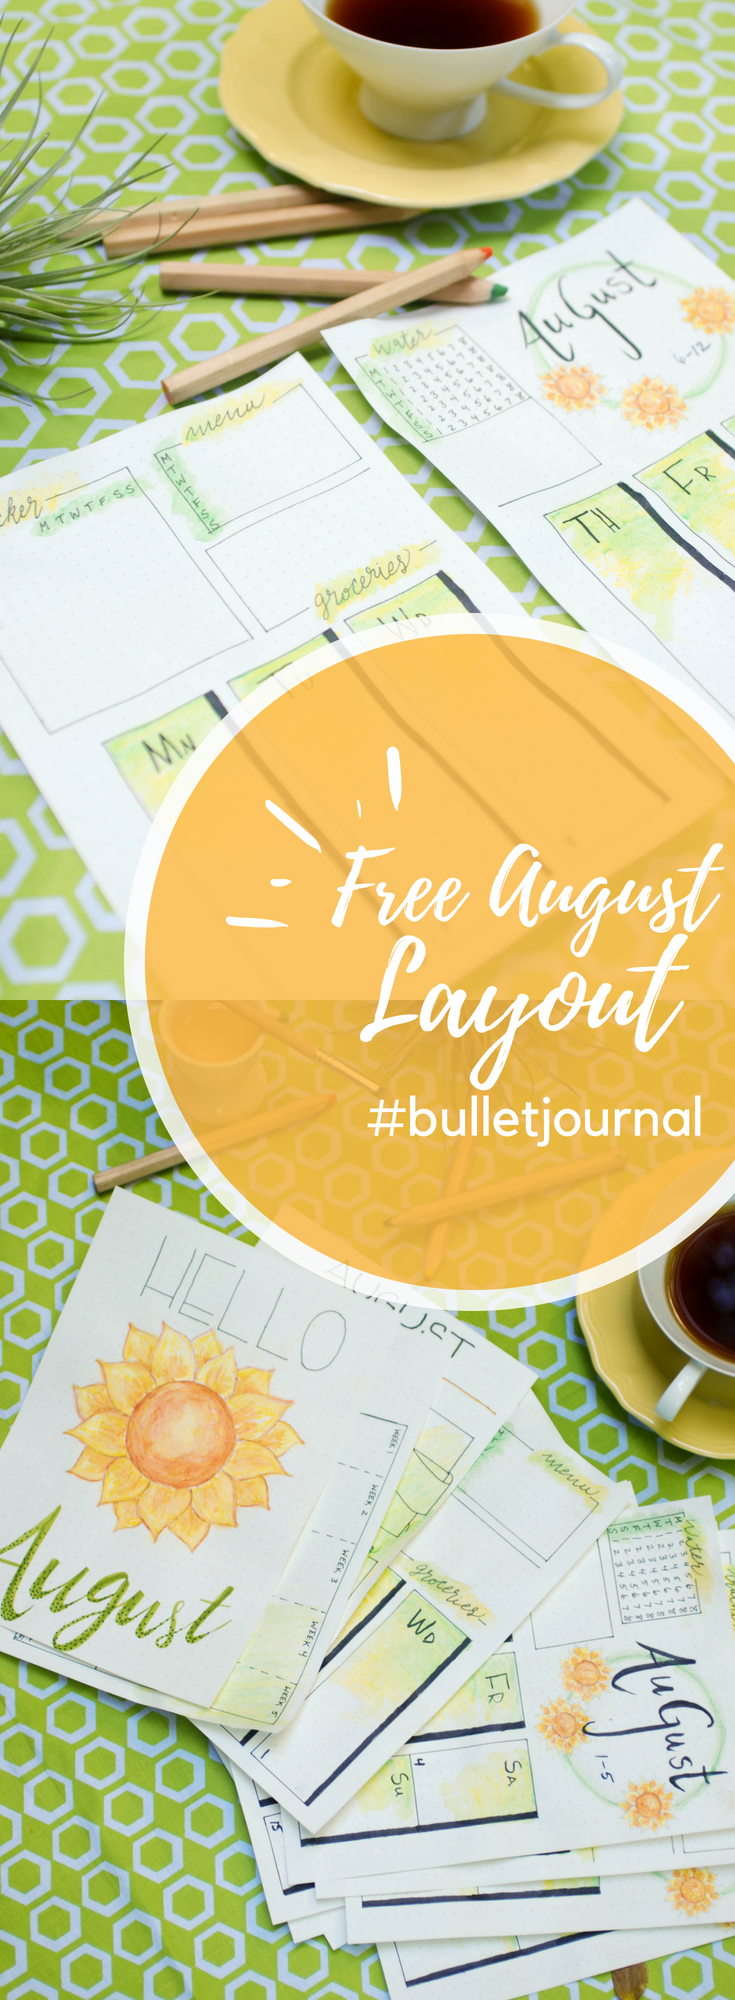 Free August 2018 Bullet Journal Layout #watertrackerbulletjournal